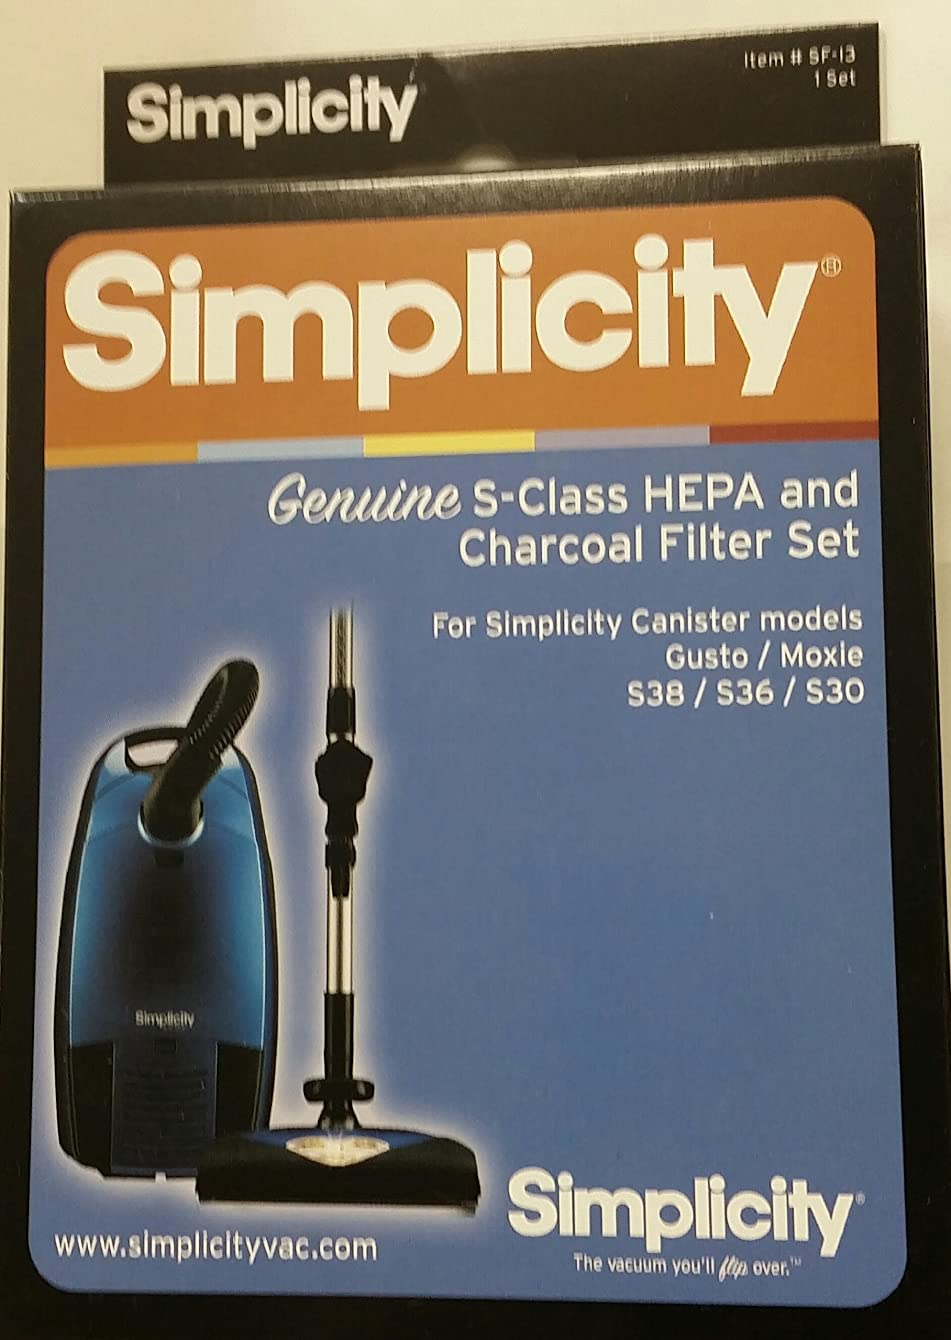 Simplicity #SF-I3 HEPA and Charcoal Filters for Gusto, Moxie, S30, S36 and S38